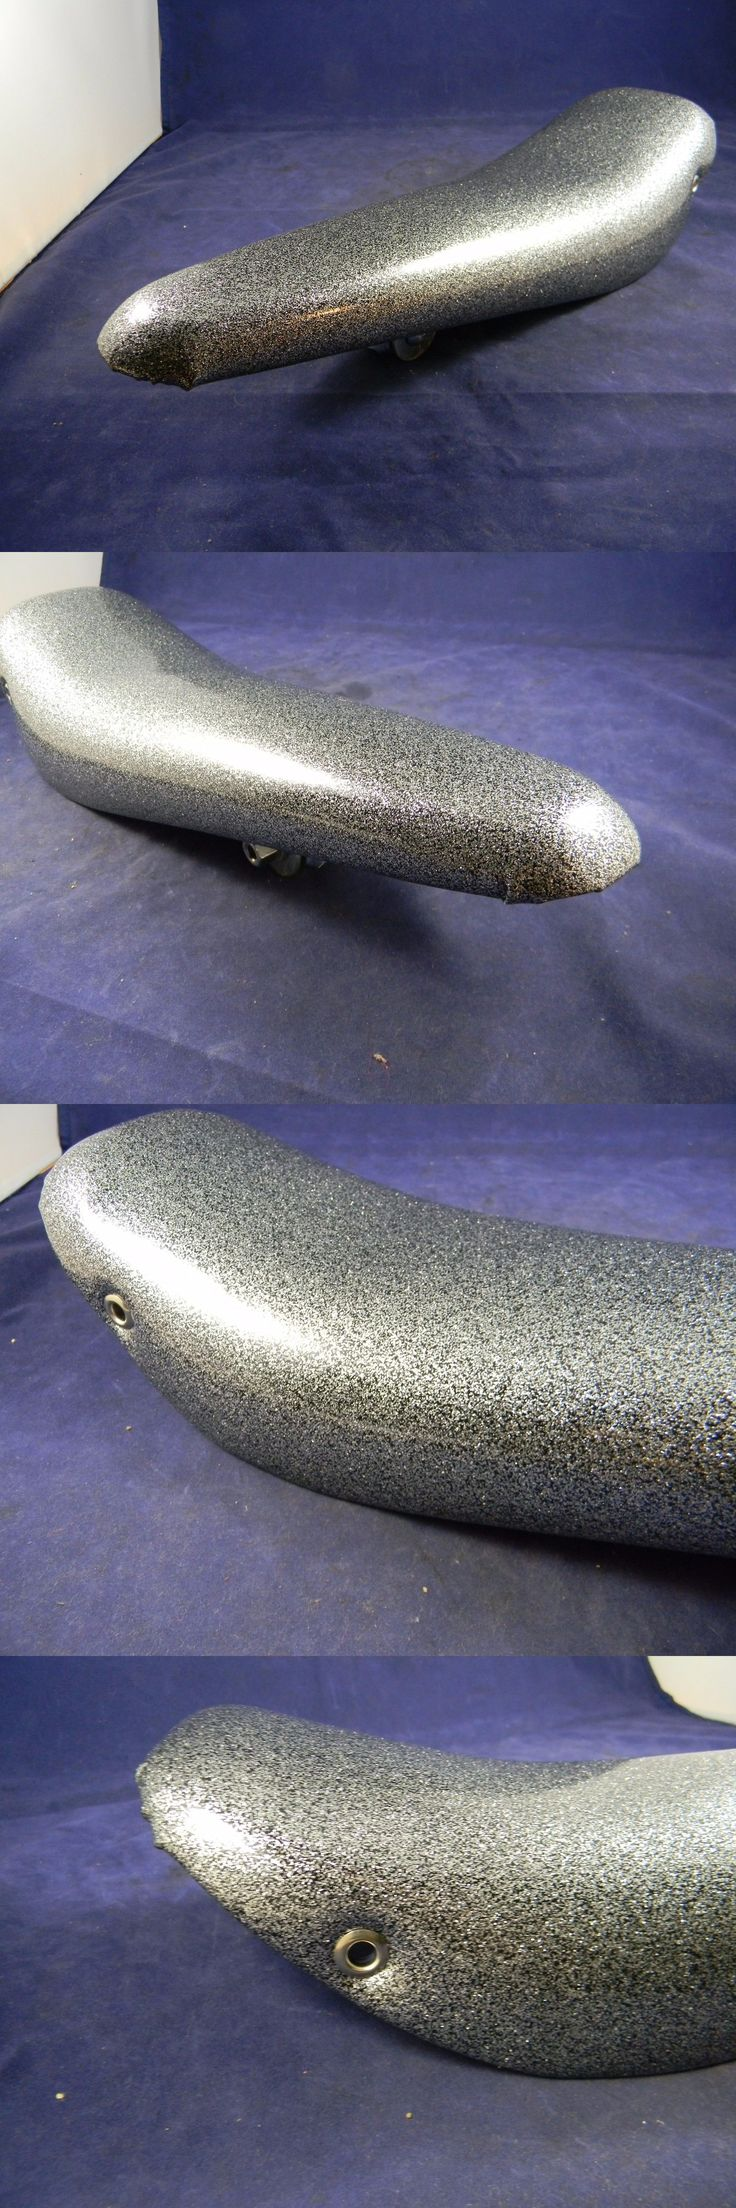 Vintage Bicycle Parts 56197: Nos Vintage Troxel Banana Seat Saddle Bicycle 16 X 5 Silver Glitter BUY IT NOW ONLY: $80.0